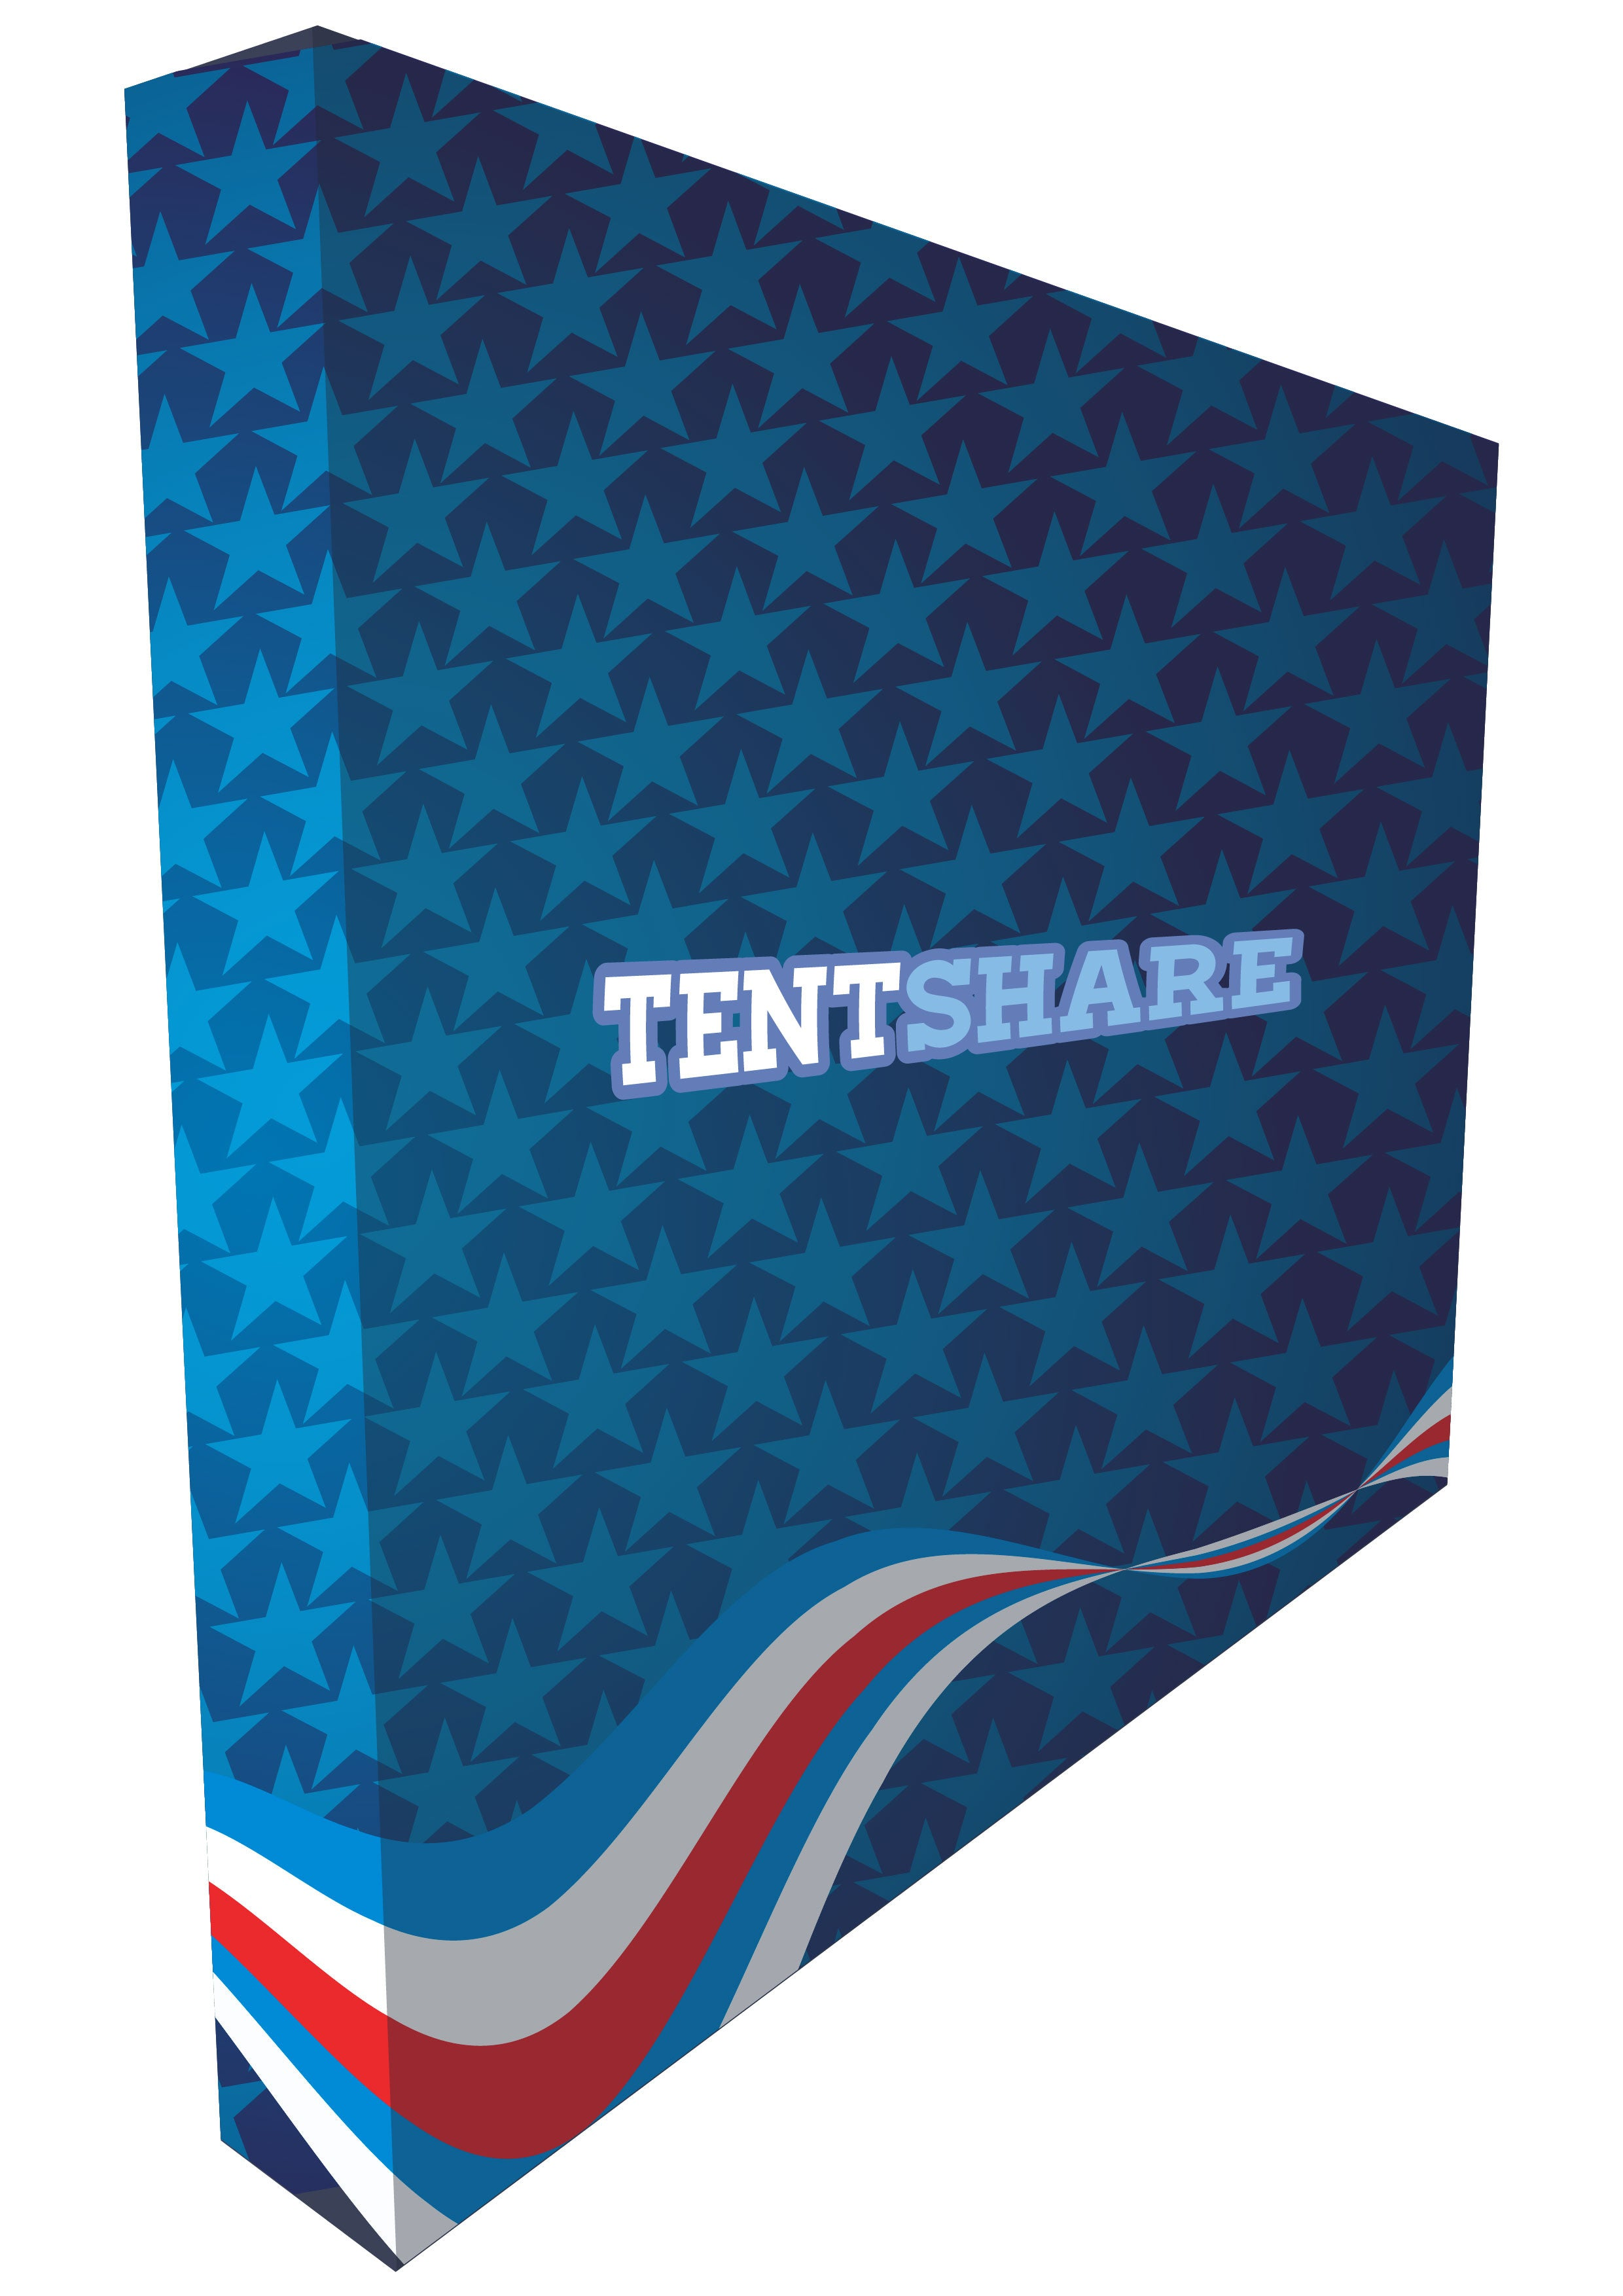 Promotional Pop Up Booth Fabric Media Wall 8x10 Tent Share Inc